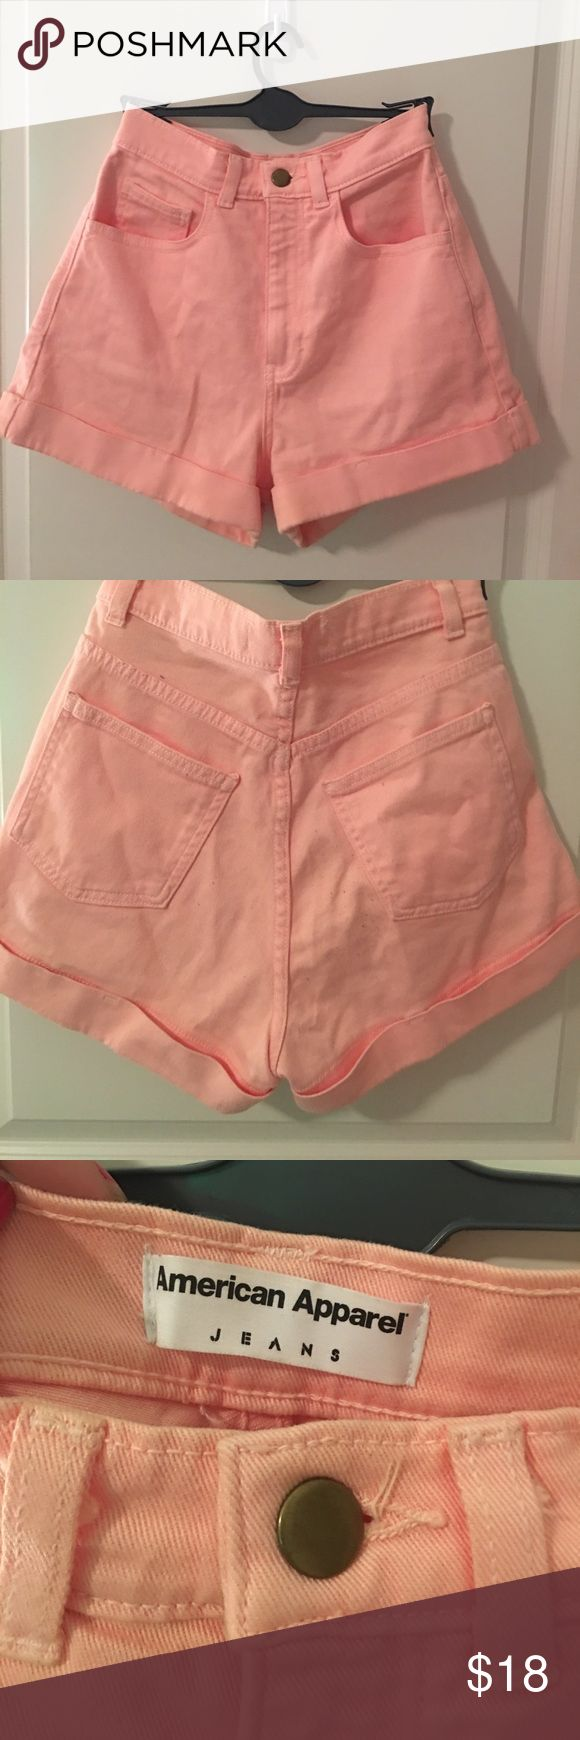 American apparel coral jean shorts Coral shorts. Only worn a couple times! American Apparel Shorts Jean Shorts